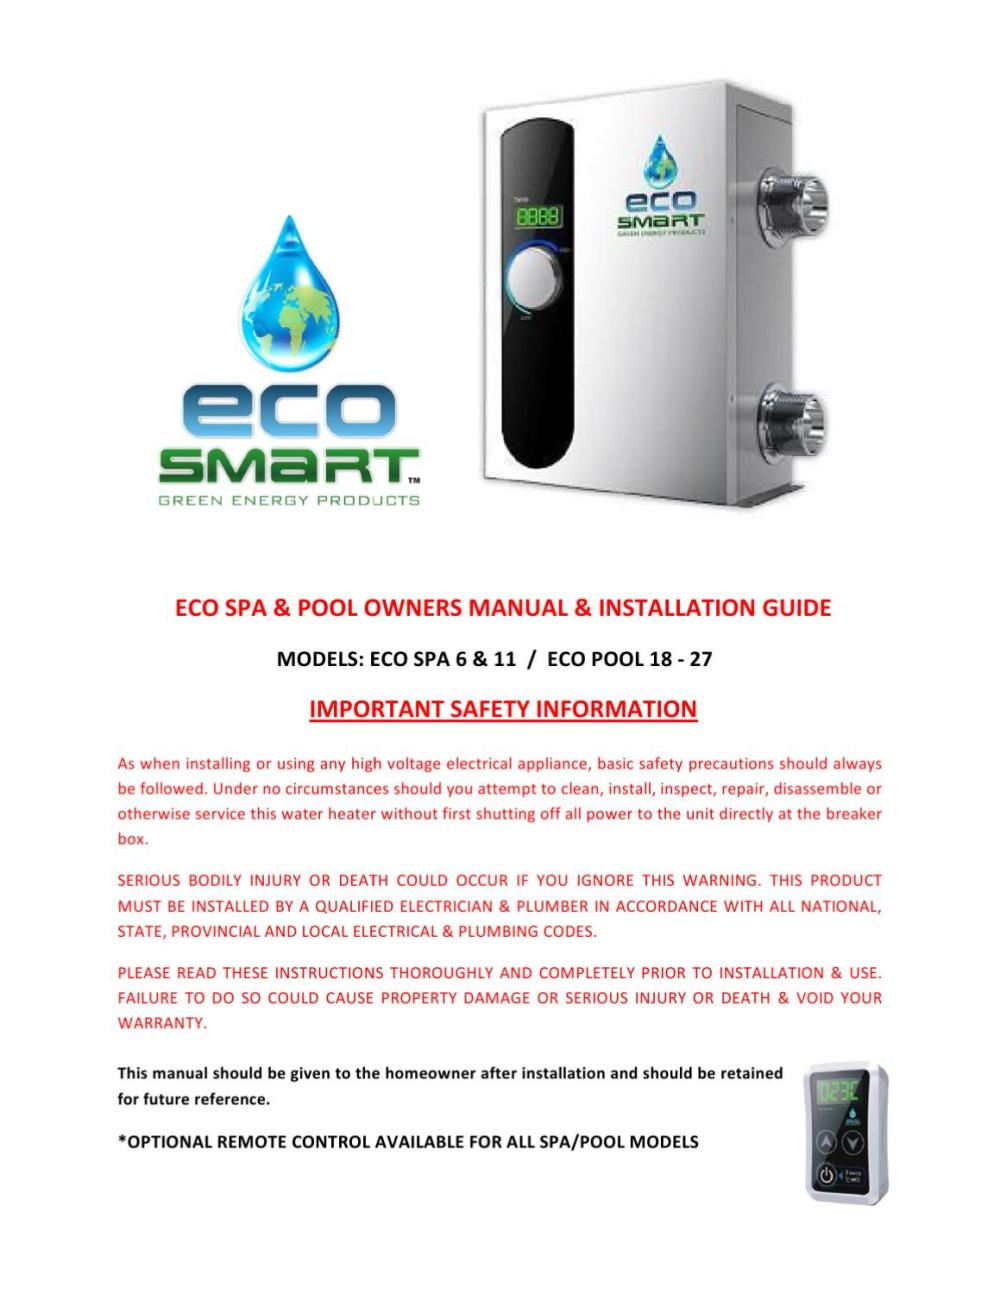 medium resolution of manual de instalacion calentadores de agua el ctricos eco spa linea ecosmart by h2o tek s a de c v issuu